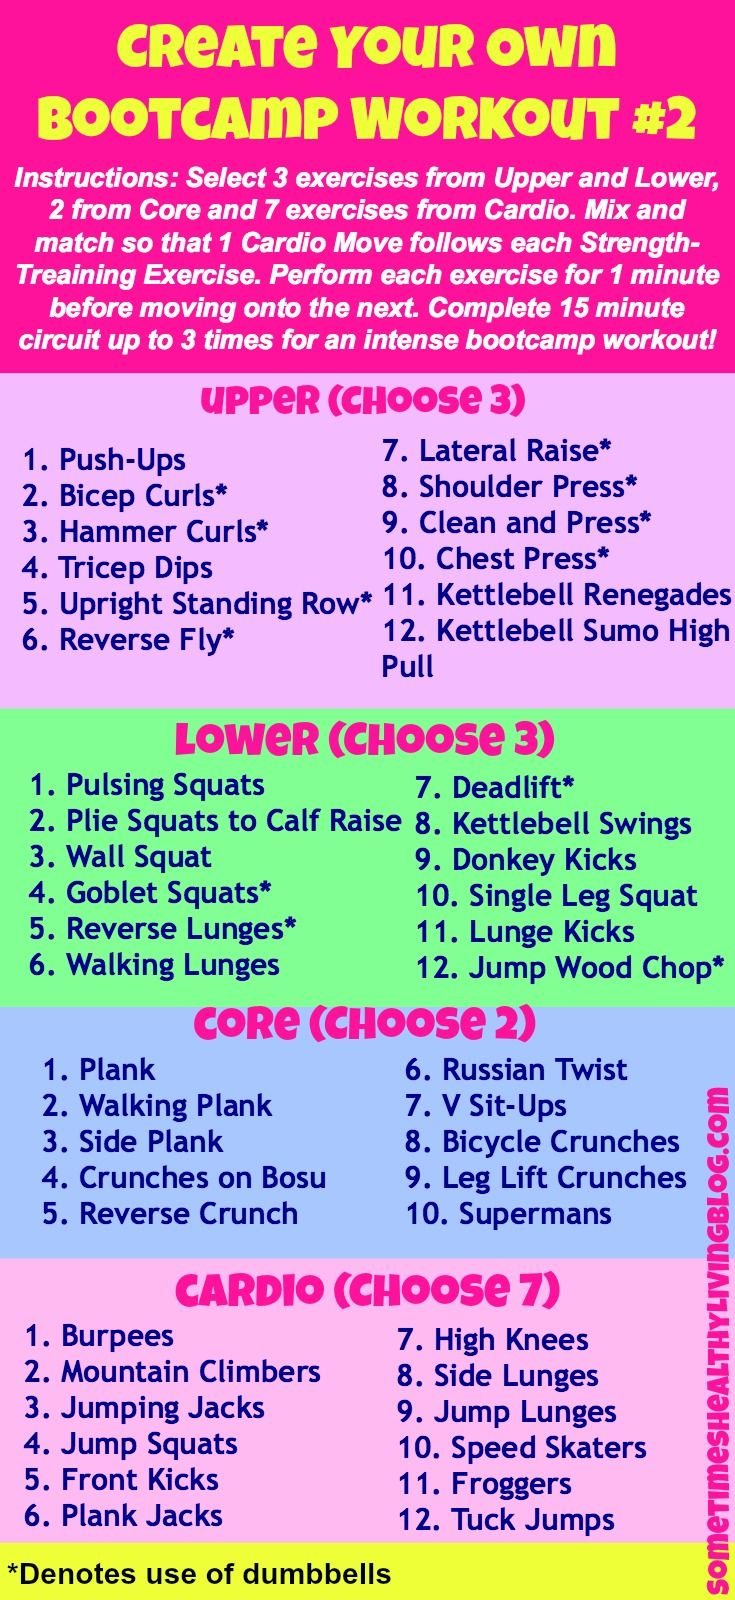 Create Your OWN Full Body Bootcamp Workout